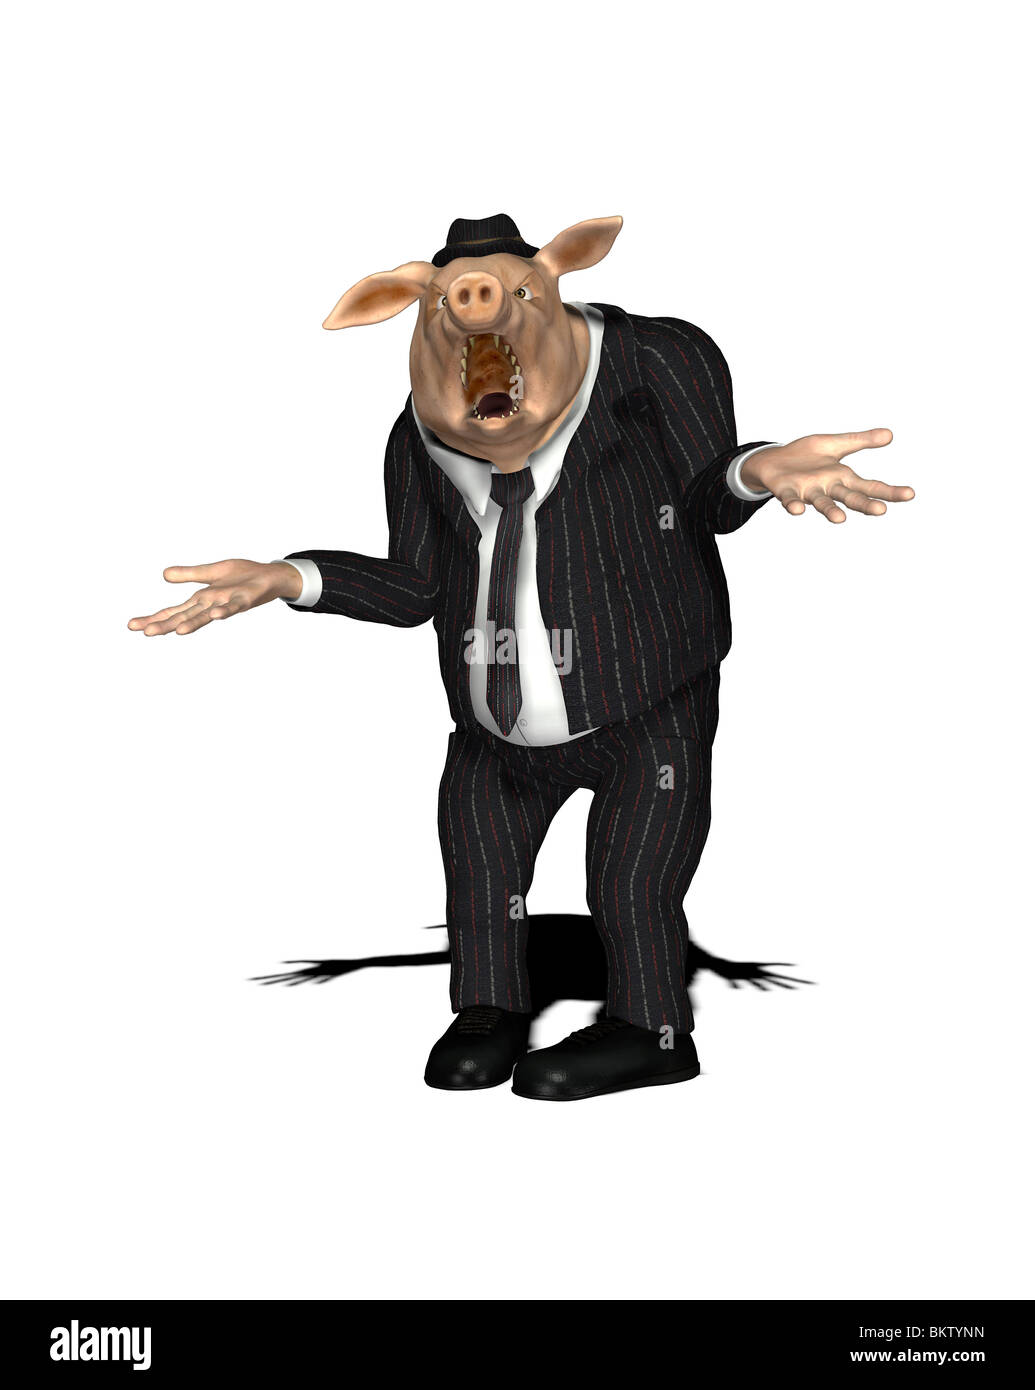 nonserious grubby salesman - Stock Image